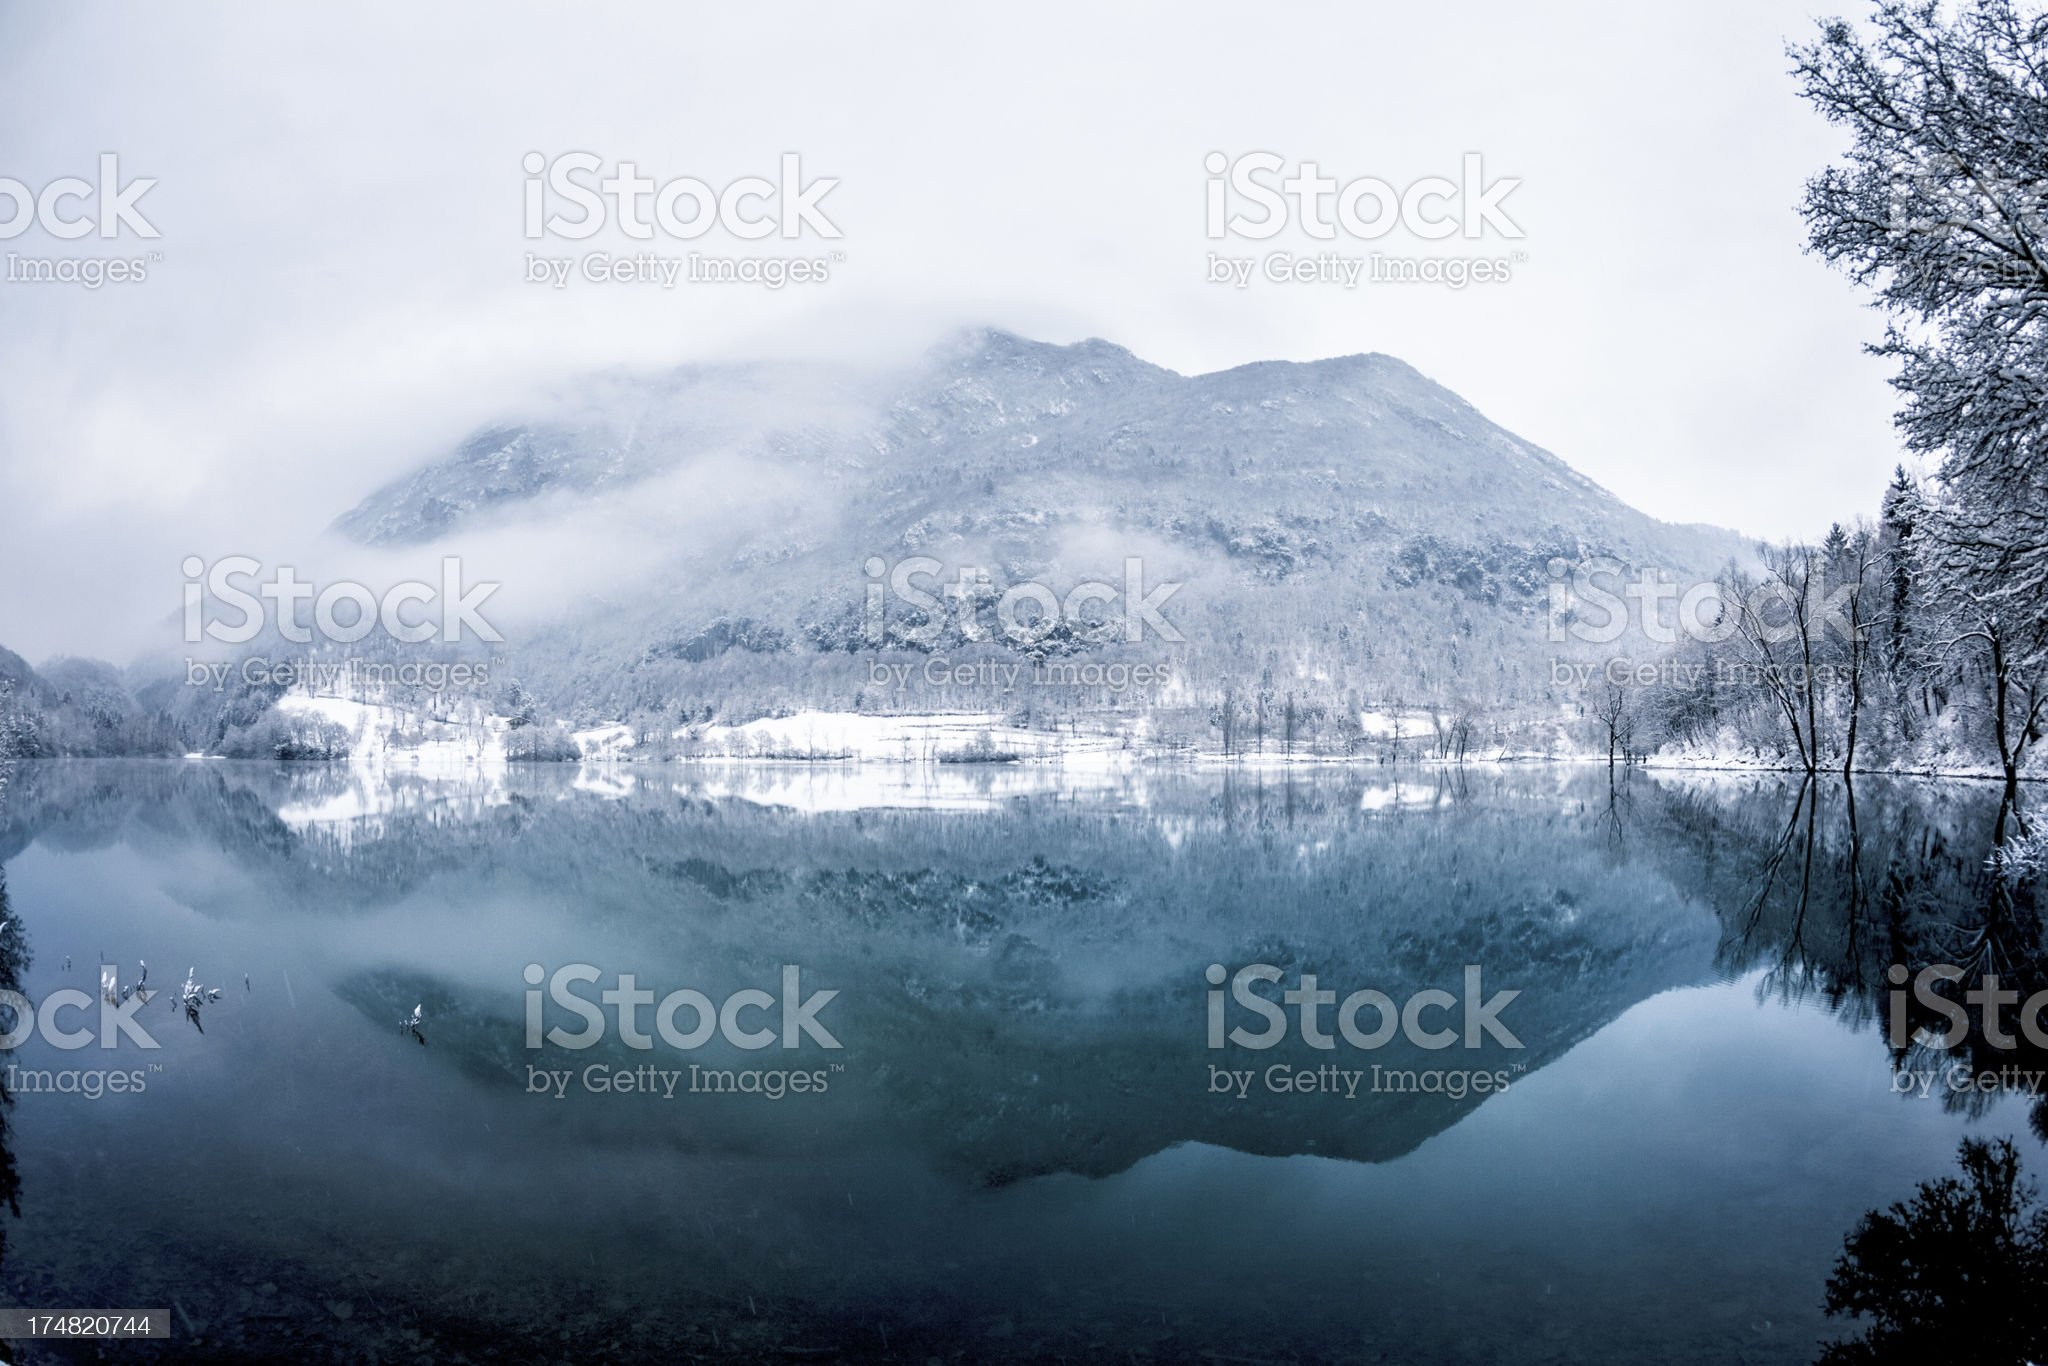 Snowy Mountain Reflections on the Lake, Winter Landscape royalty-free stock photo